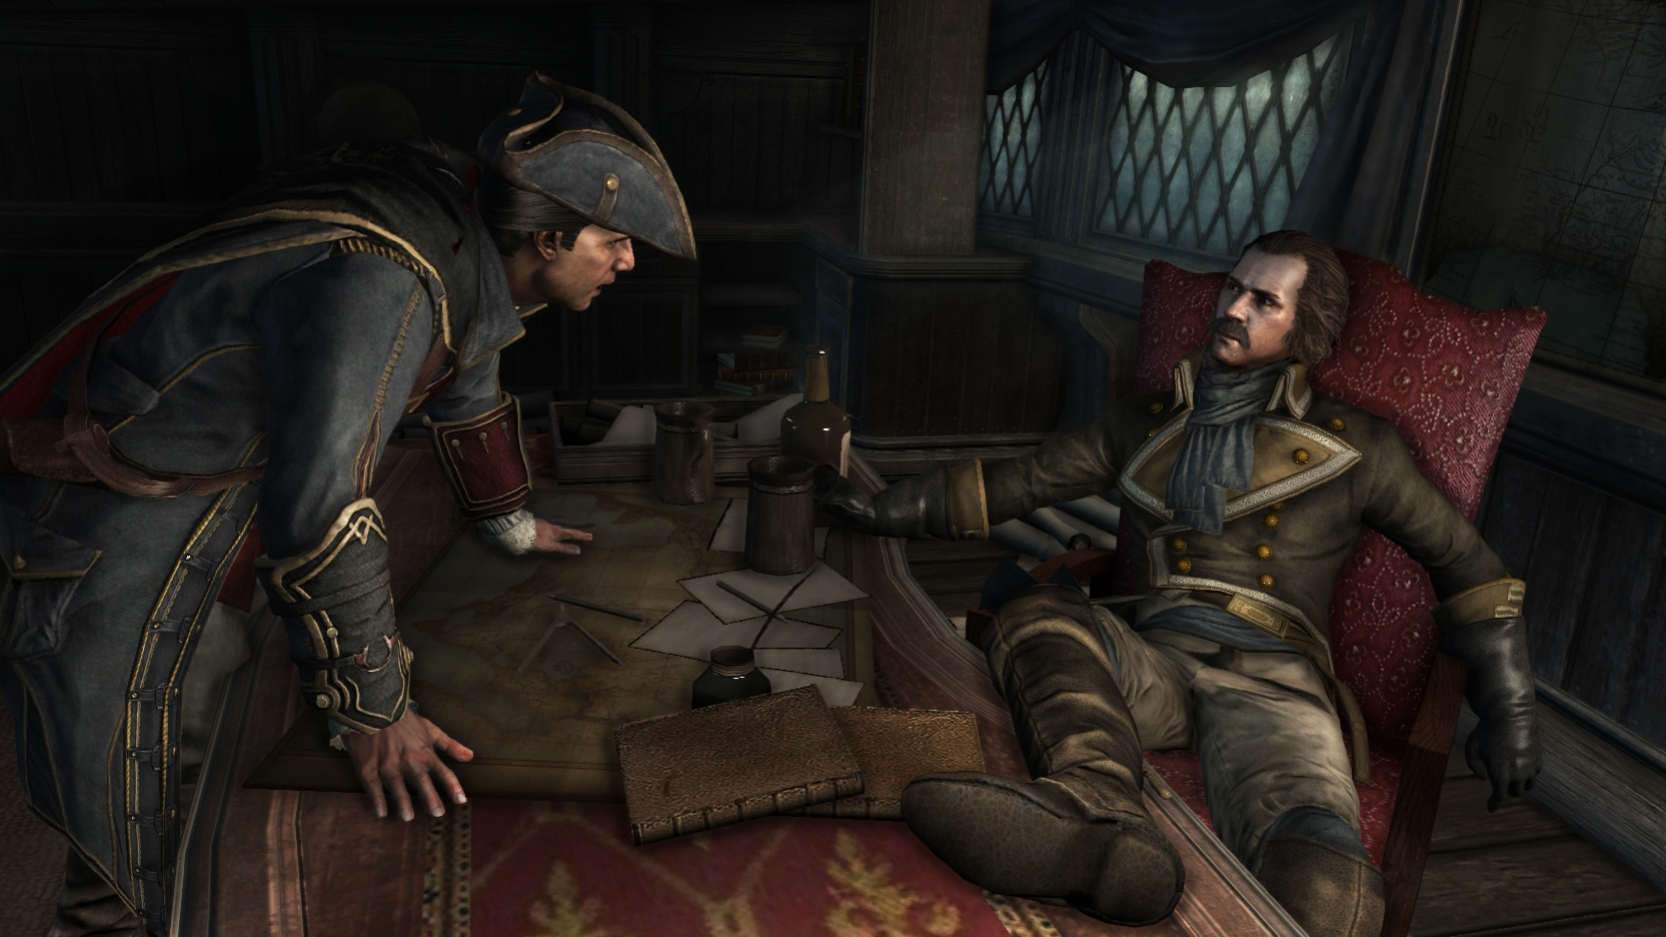 Assassin's Creed3 - Начало игры